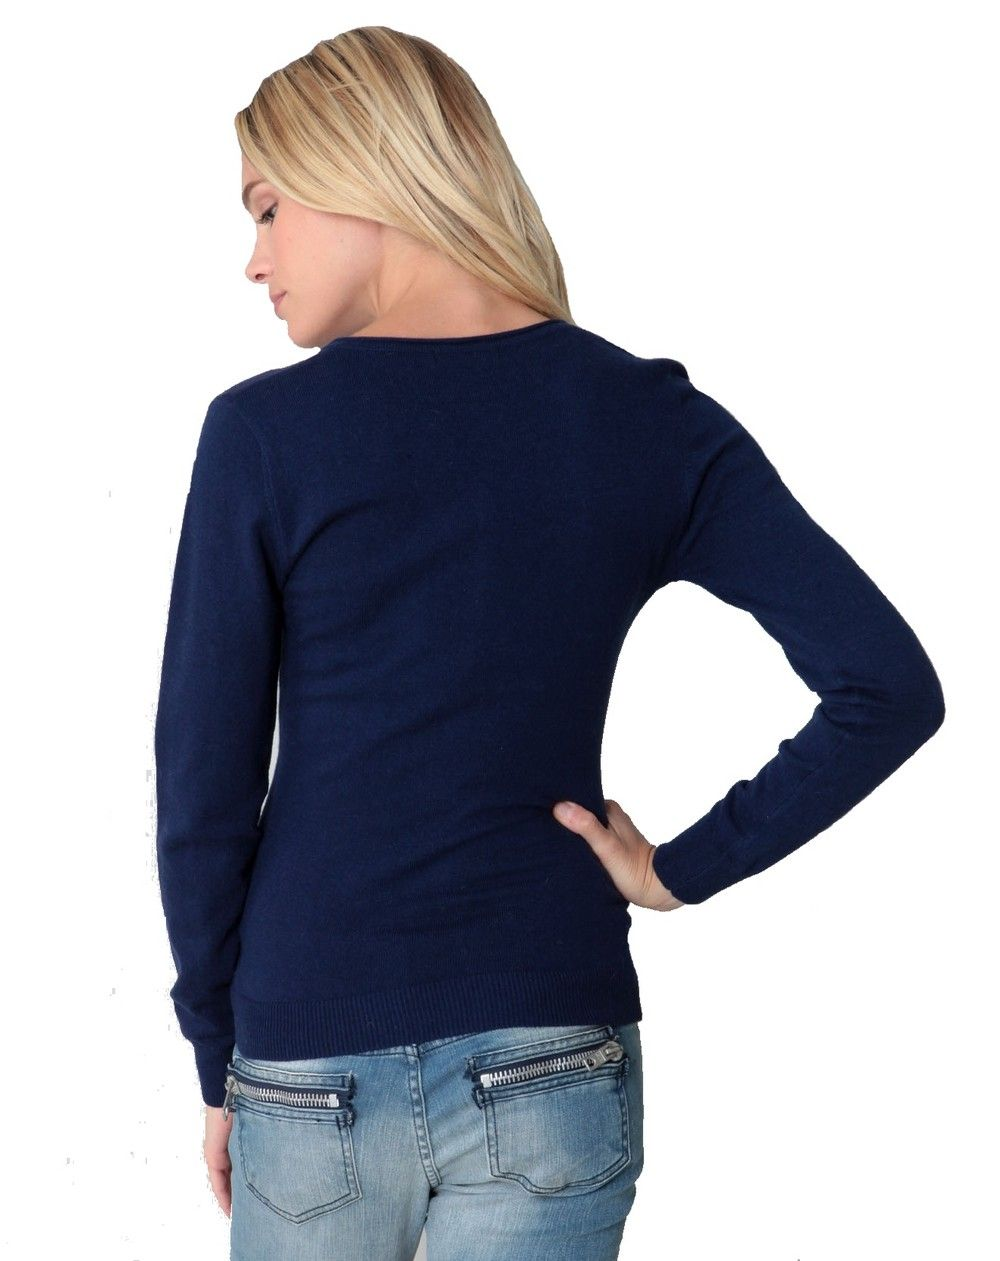 Assuili Tunisian Neck Sweater with Rolled Buttons in Navy